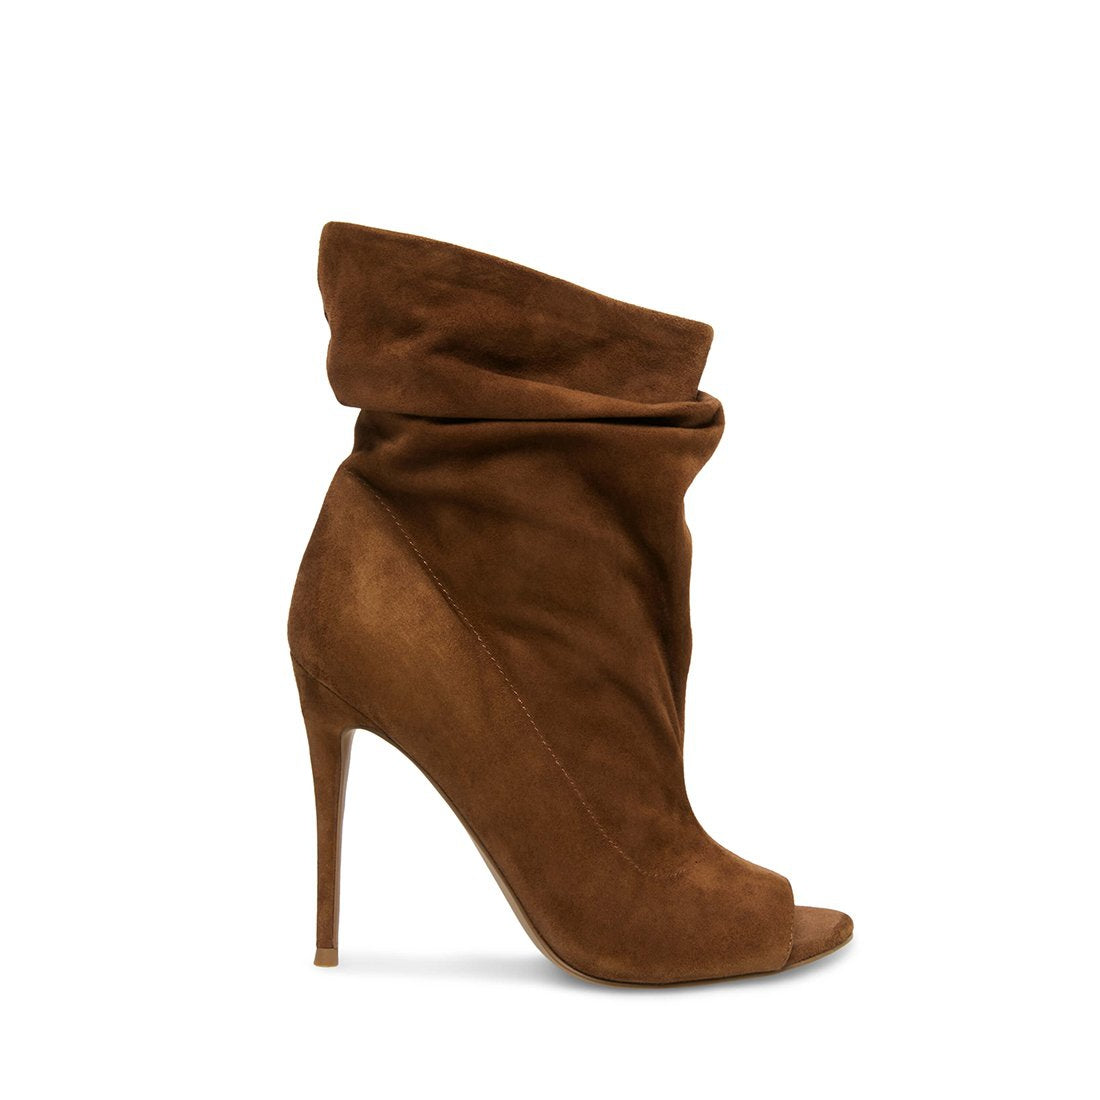 31a7fbb8876 SURRENDER BROWN SUEDE – Steve Madden